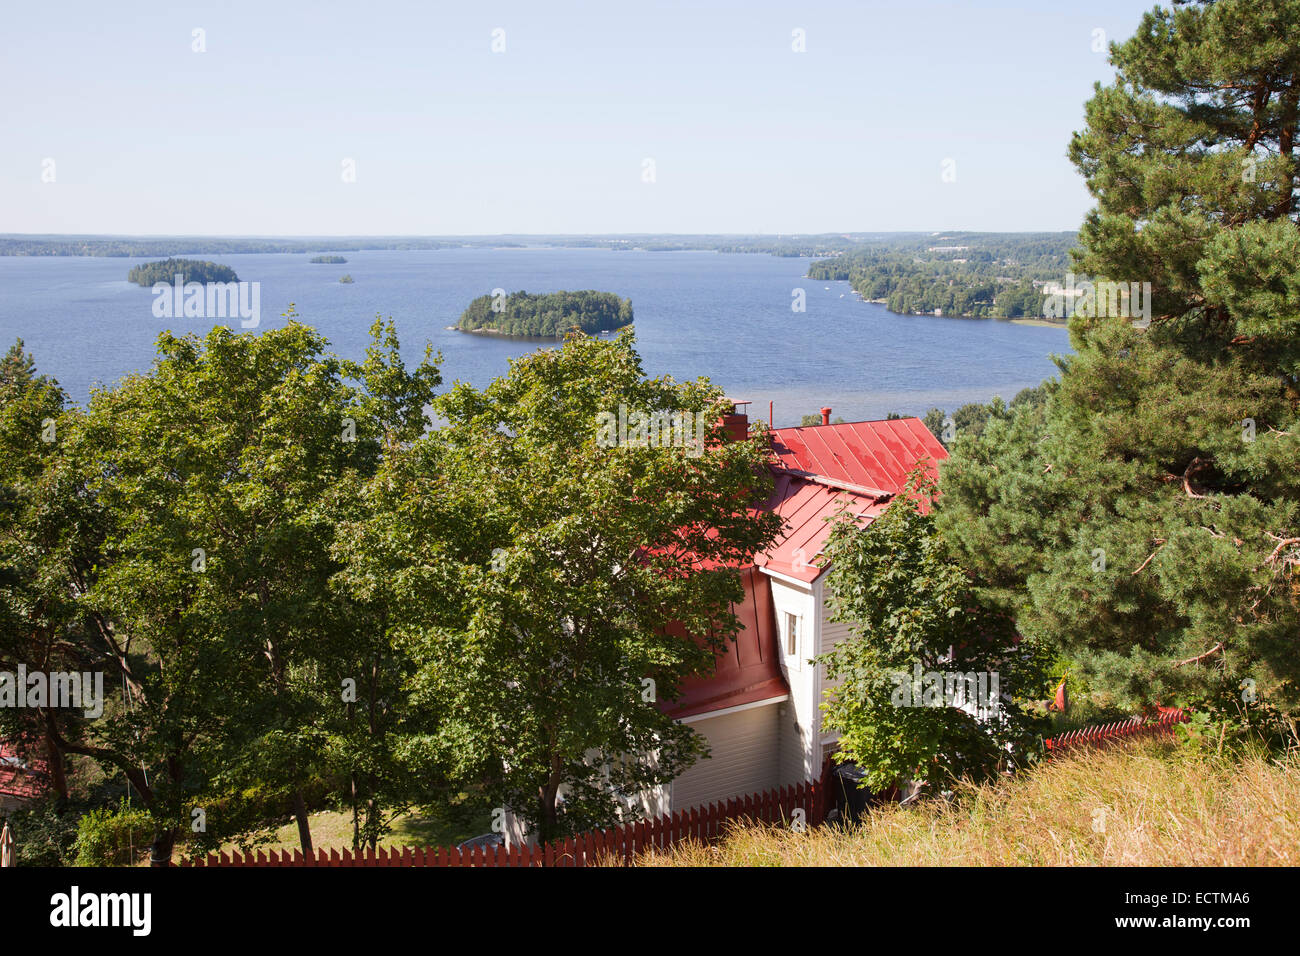 view of the lake pyhajarvi, tampere, finland, europe - Stock Image